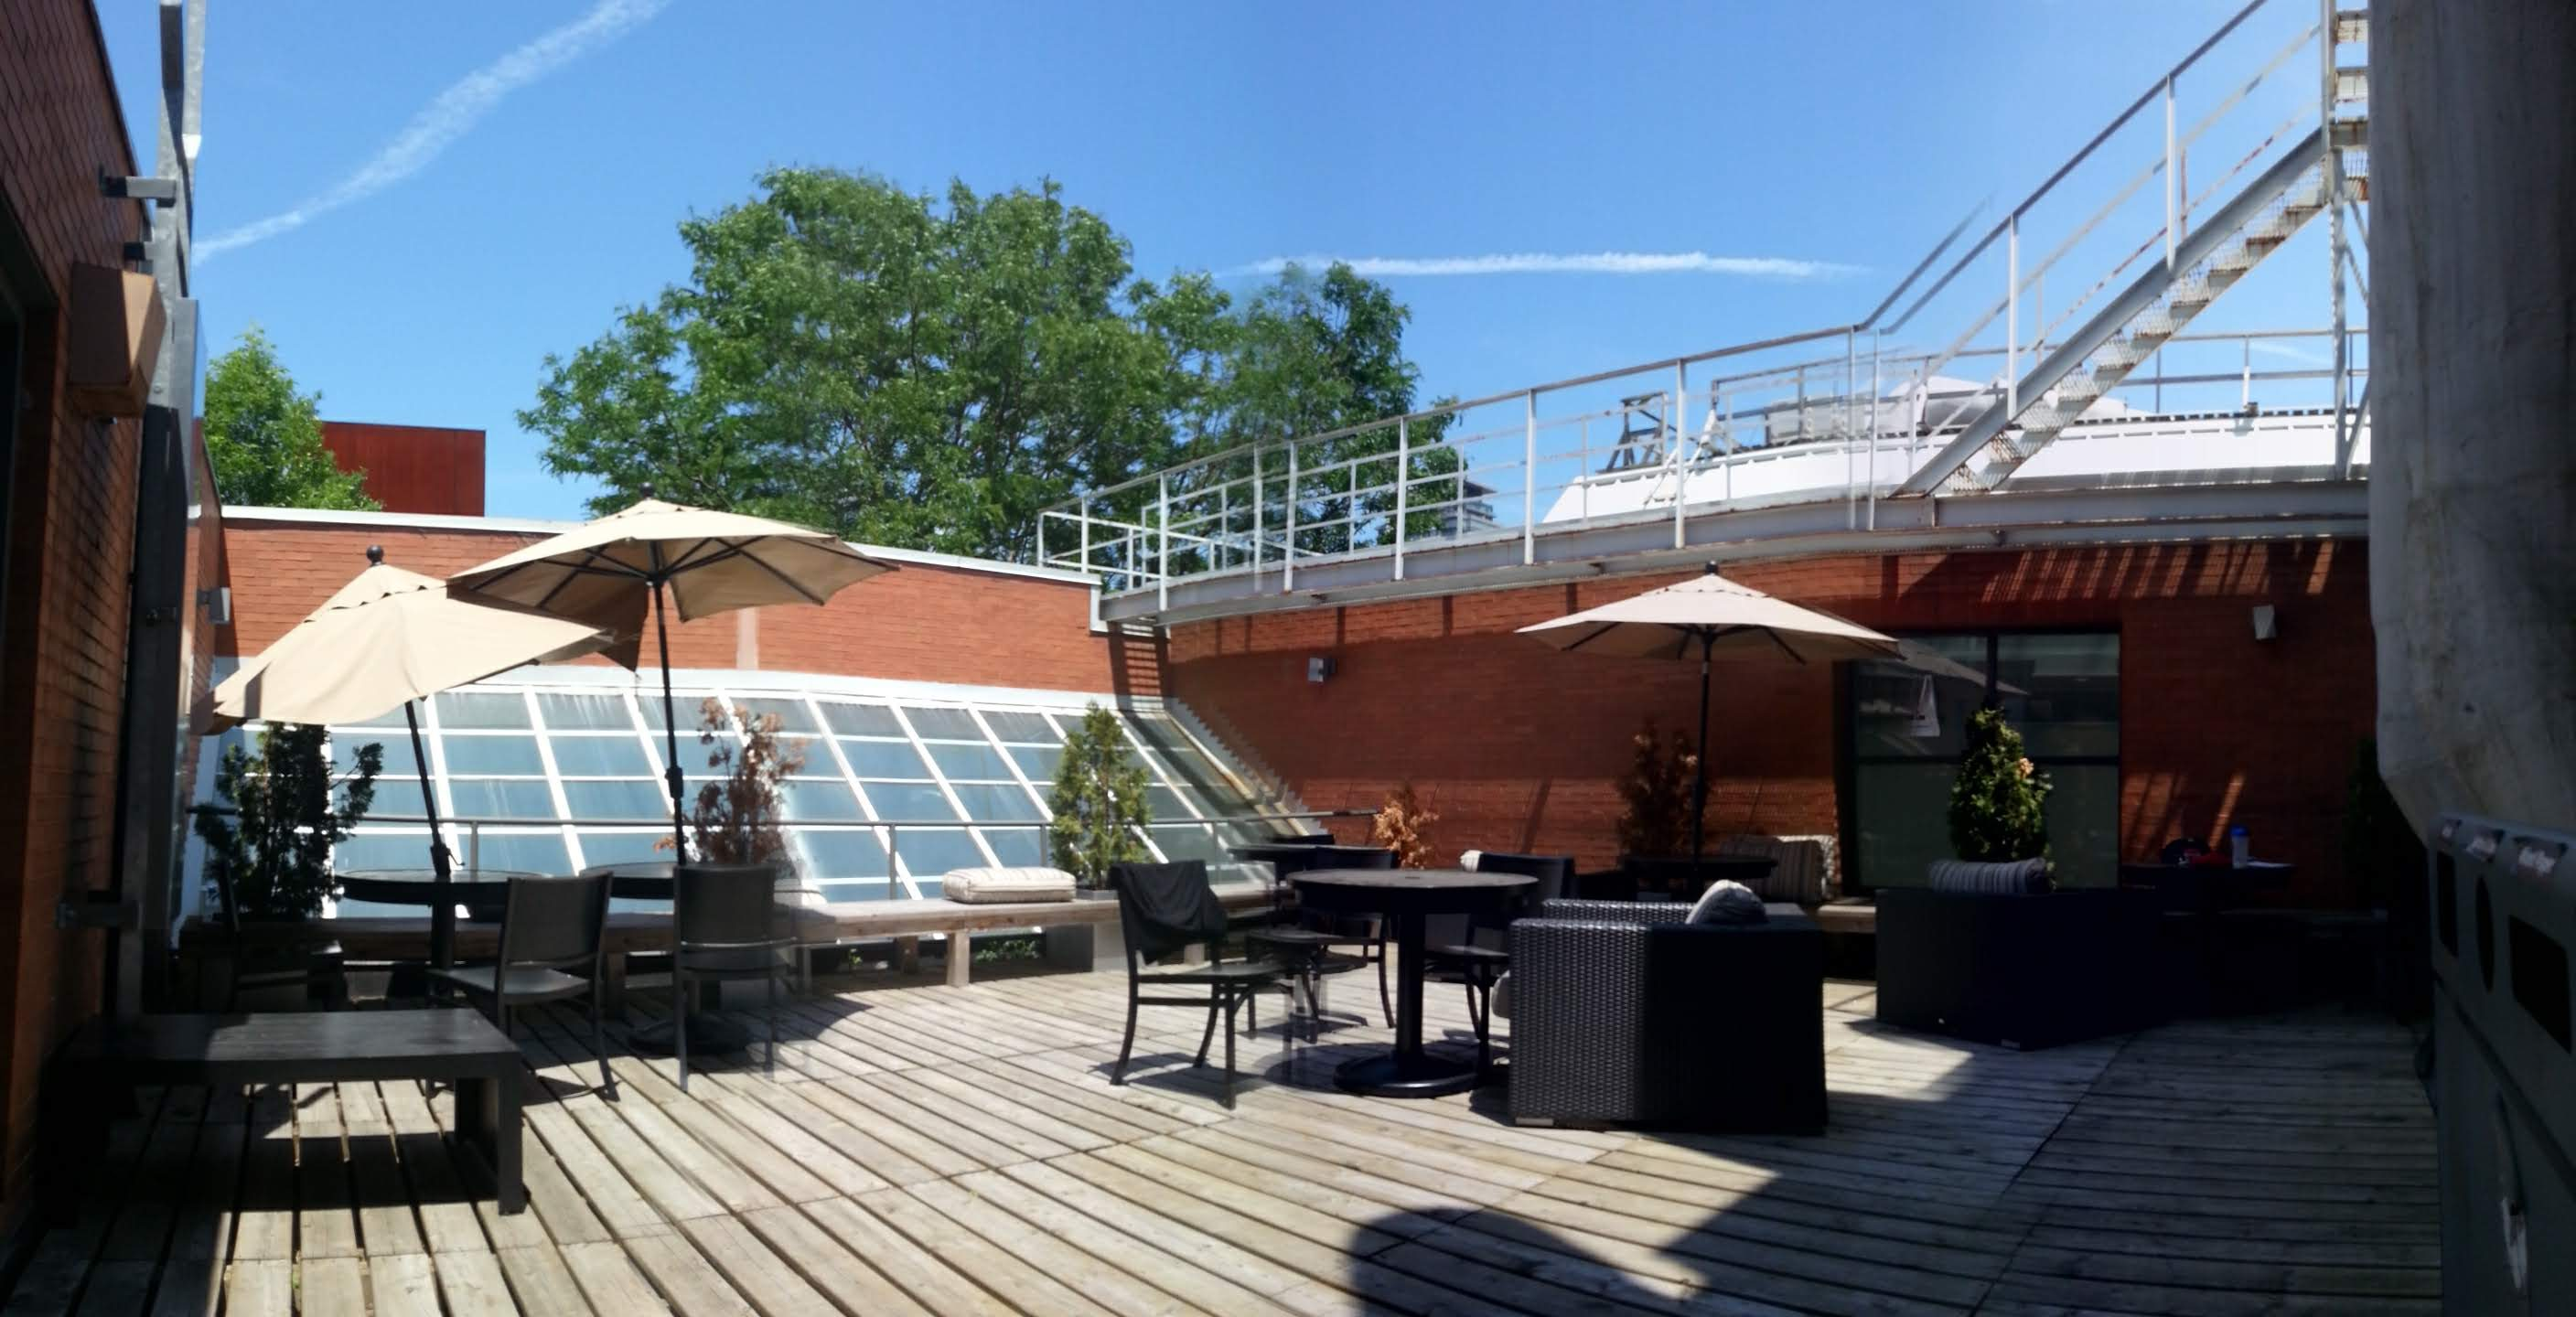 Terrace with patio furniture and trees at Innis College